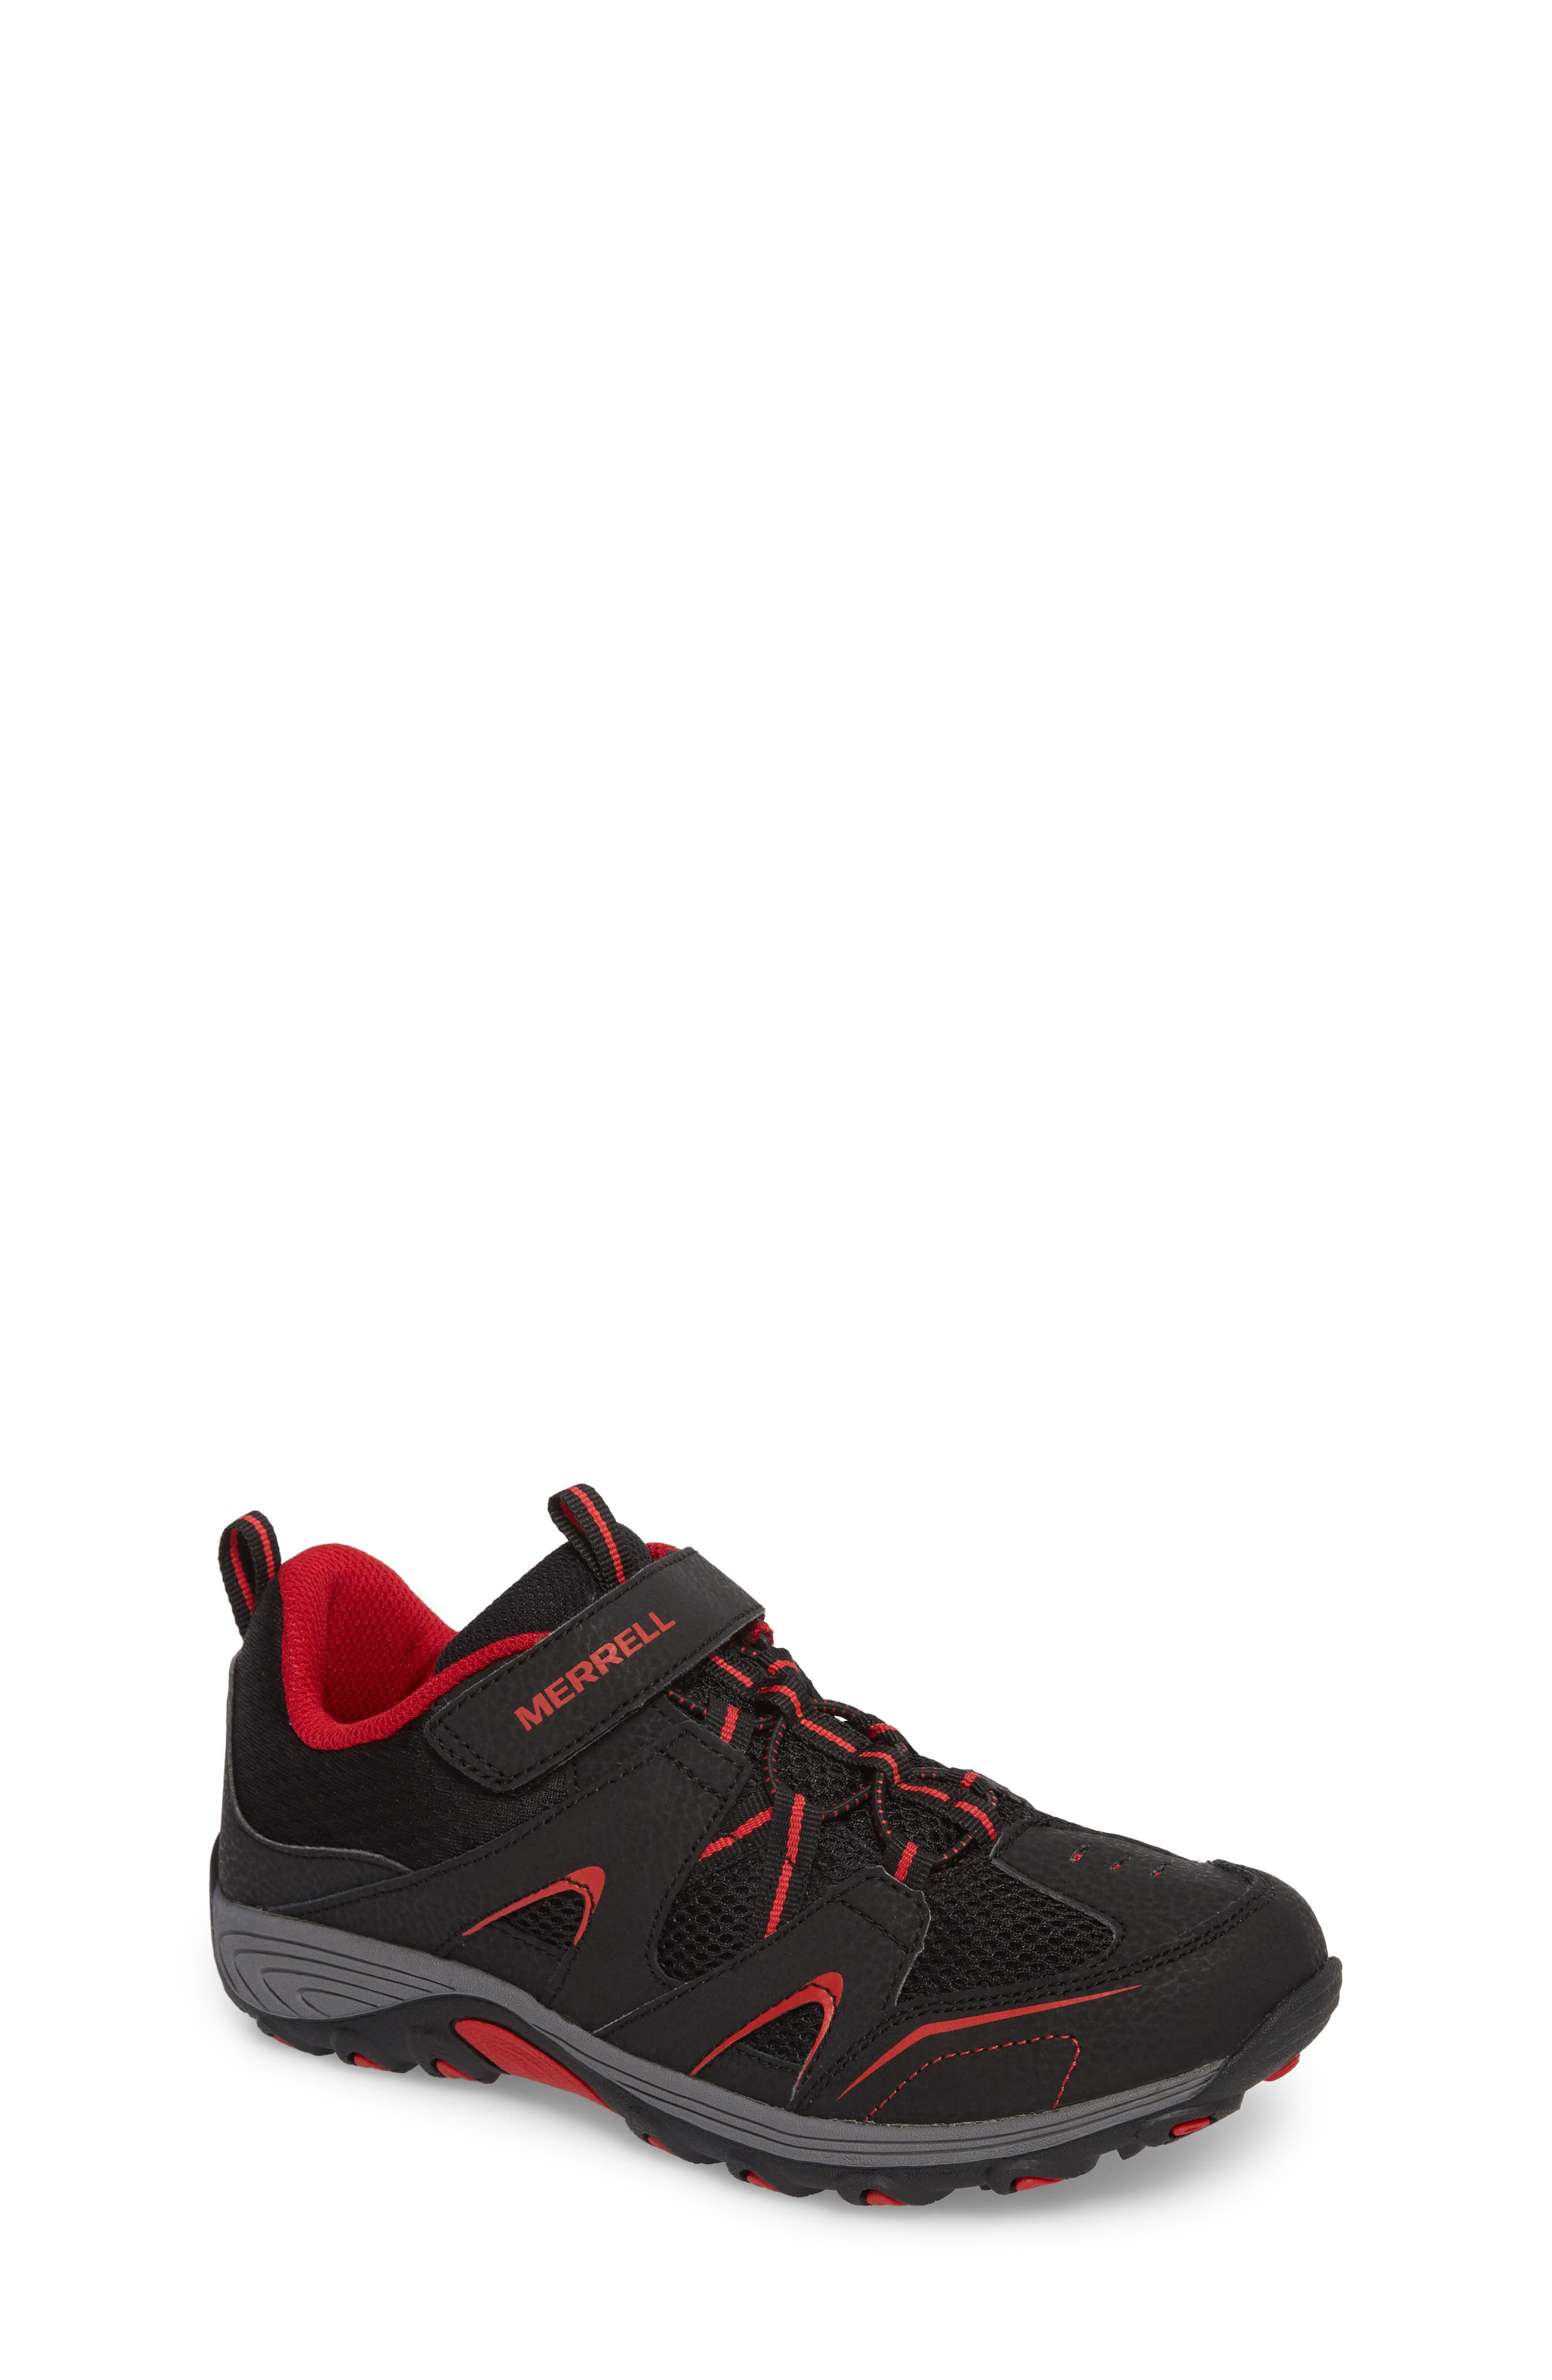 Trail Chaser Sneaker,                             Main thumbnail 1, color,                             Black/ Red